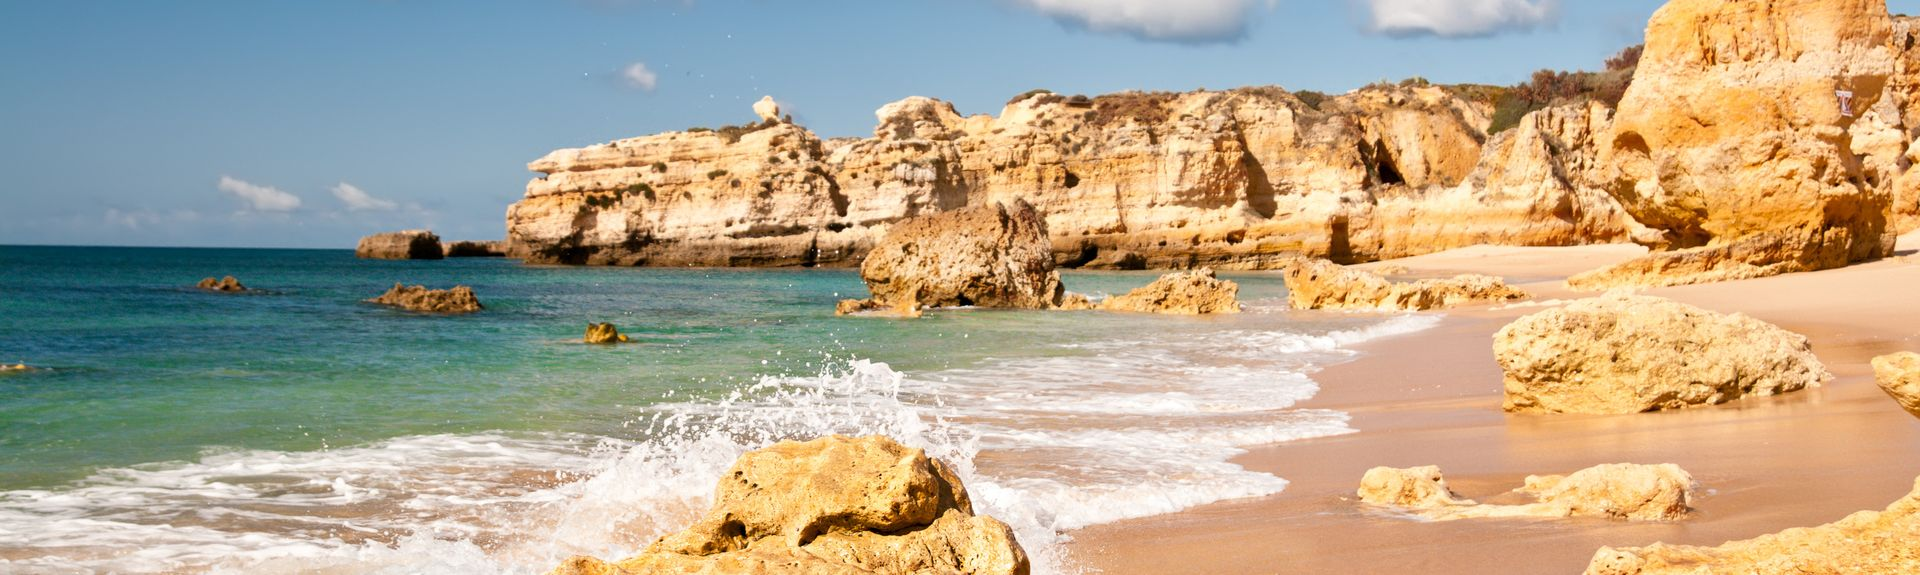 Municipality of Albufeira, Portugal